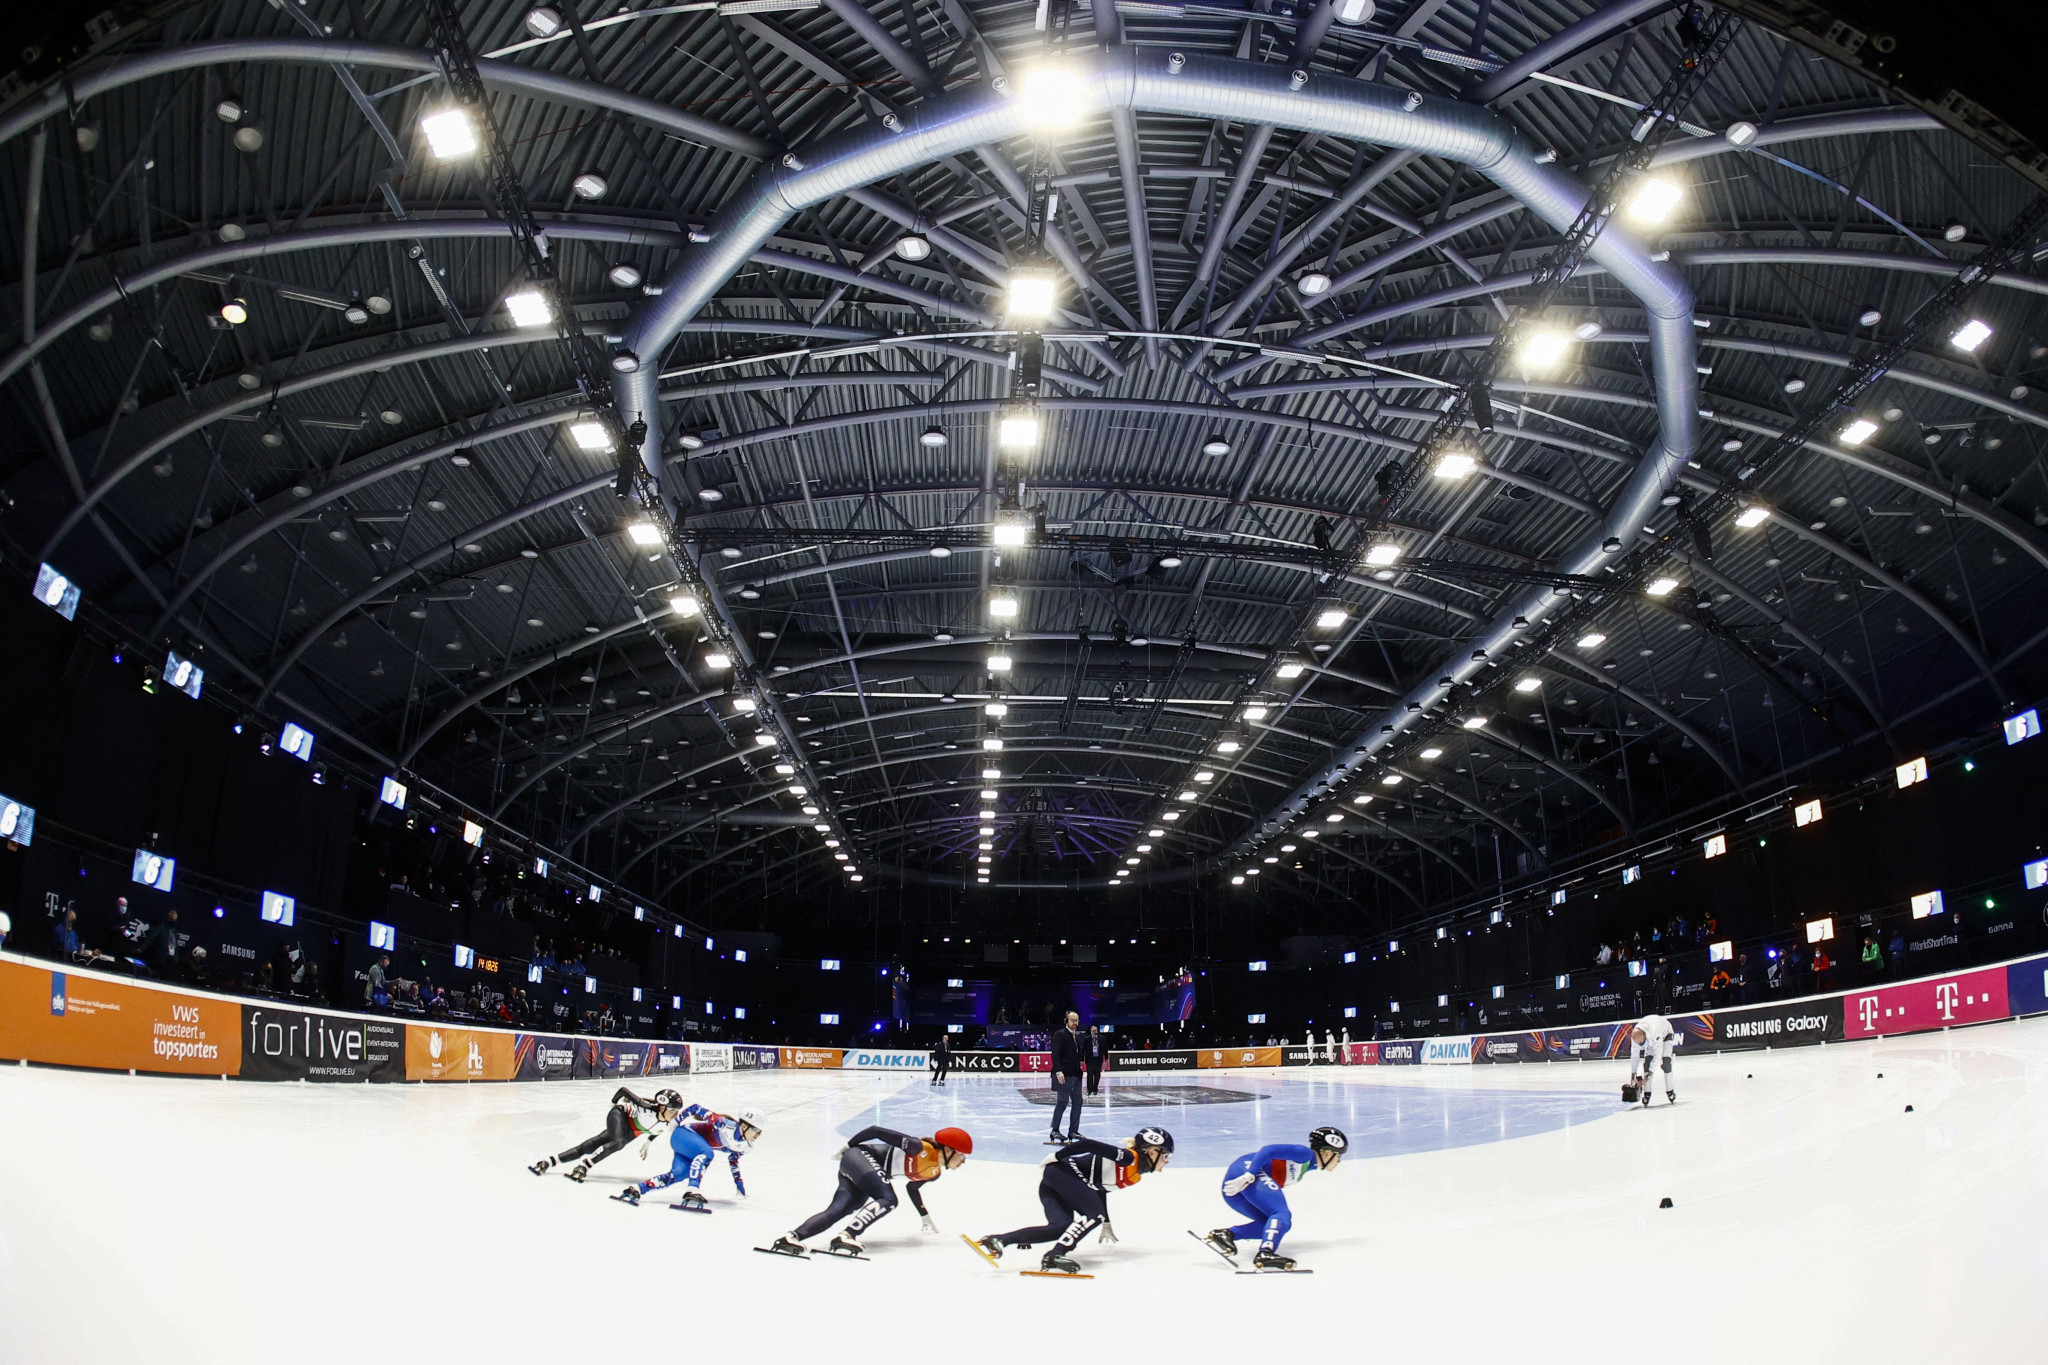 The International Skating Union has signed a four-season extension to its media rights deal with Infront ©Getty Images